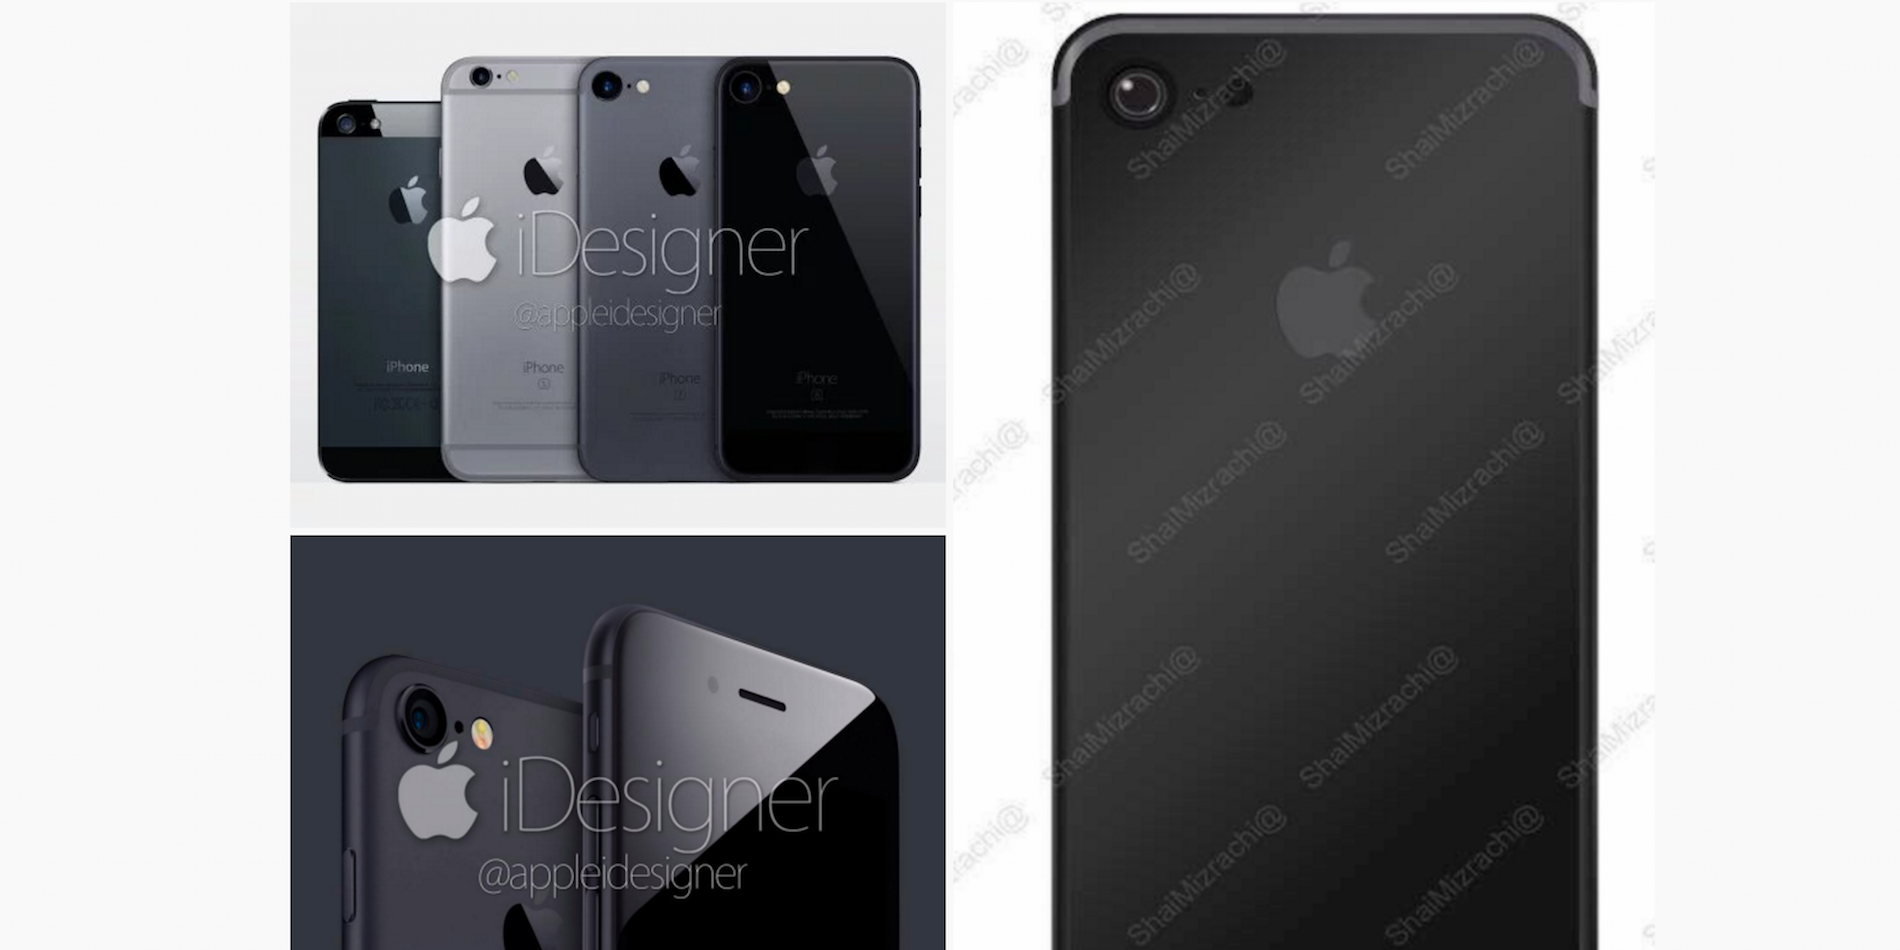 iPhone-7-space-black